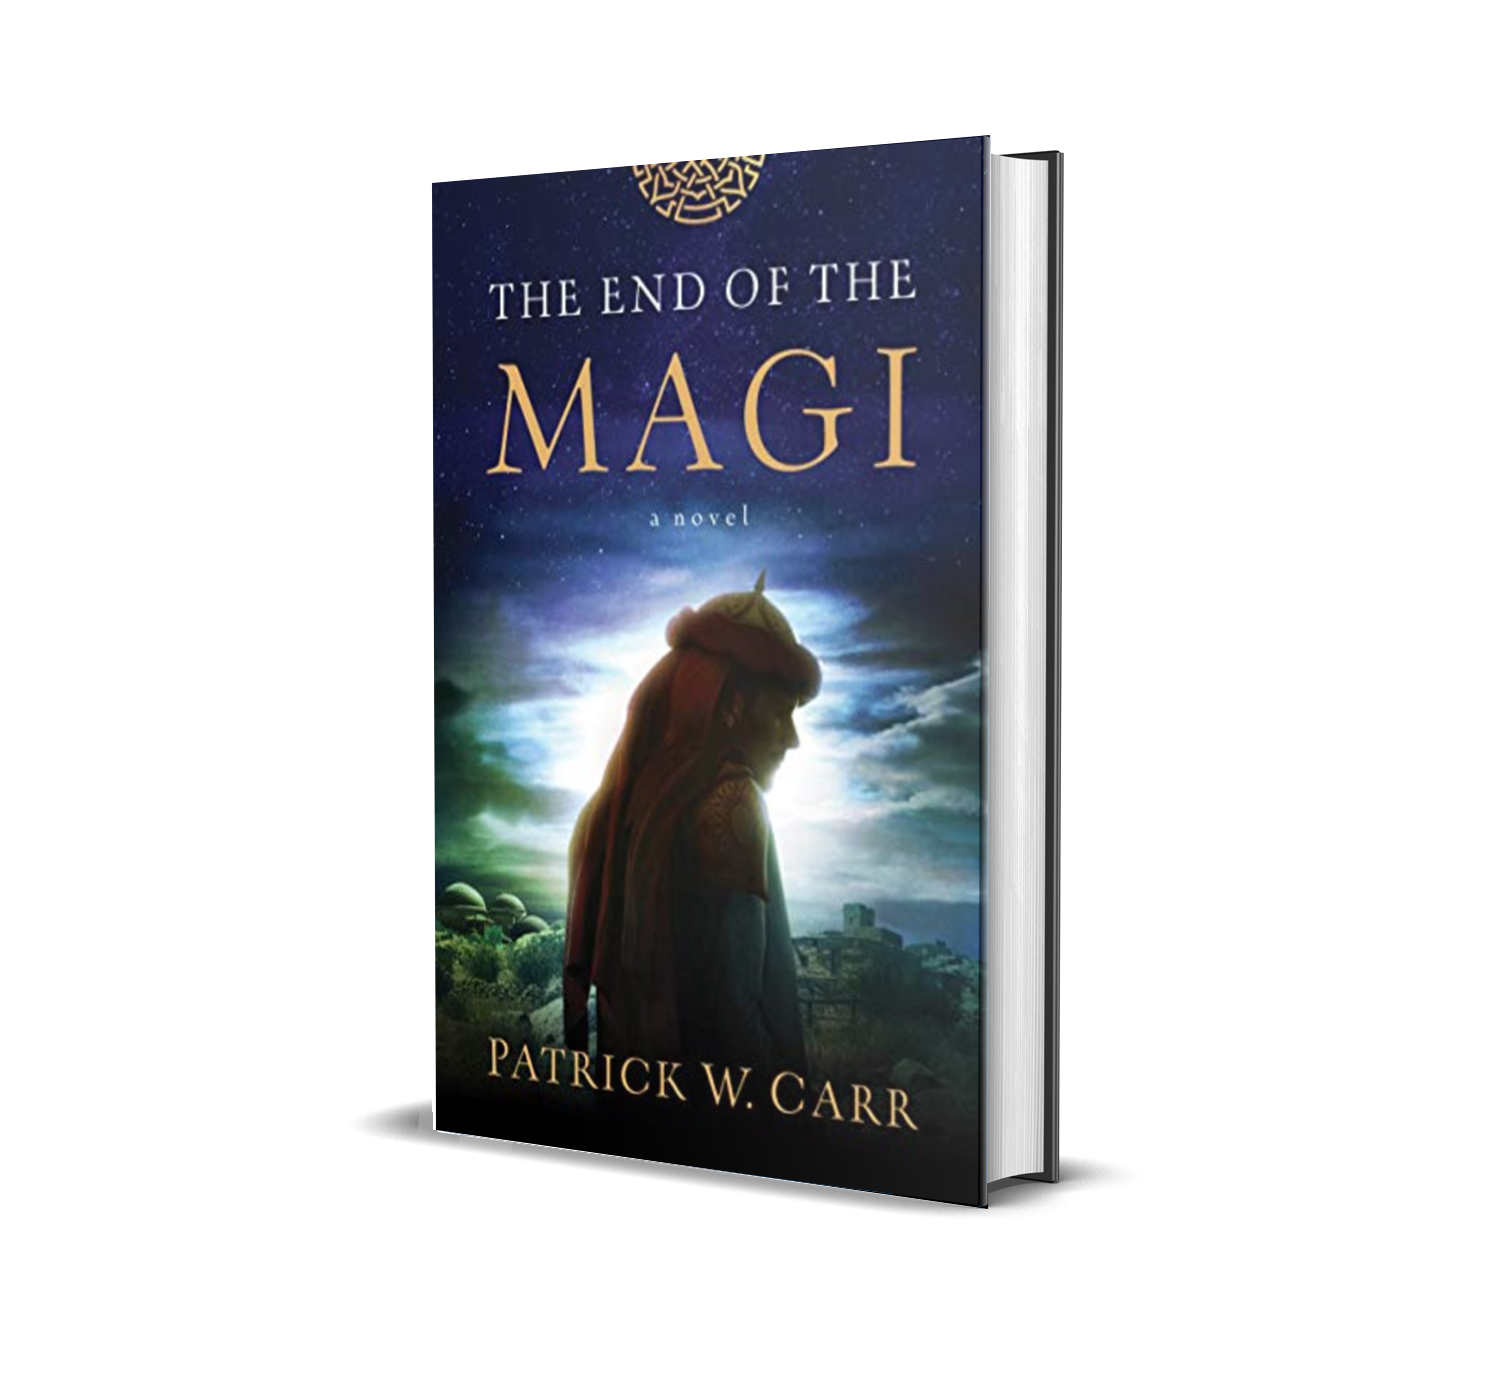 The End of the Magi by Patrick W. Carr